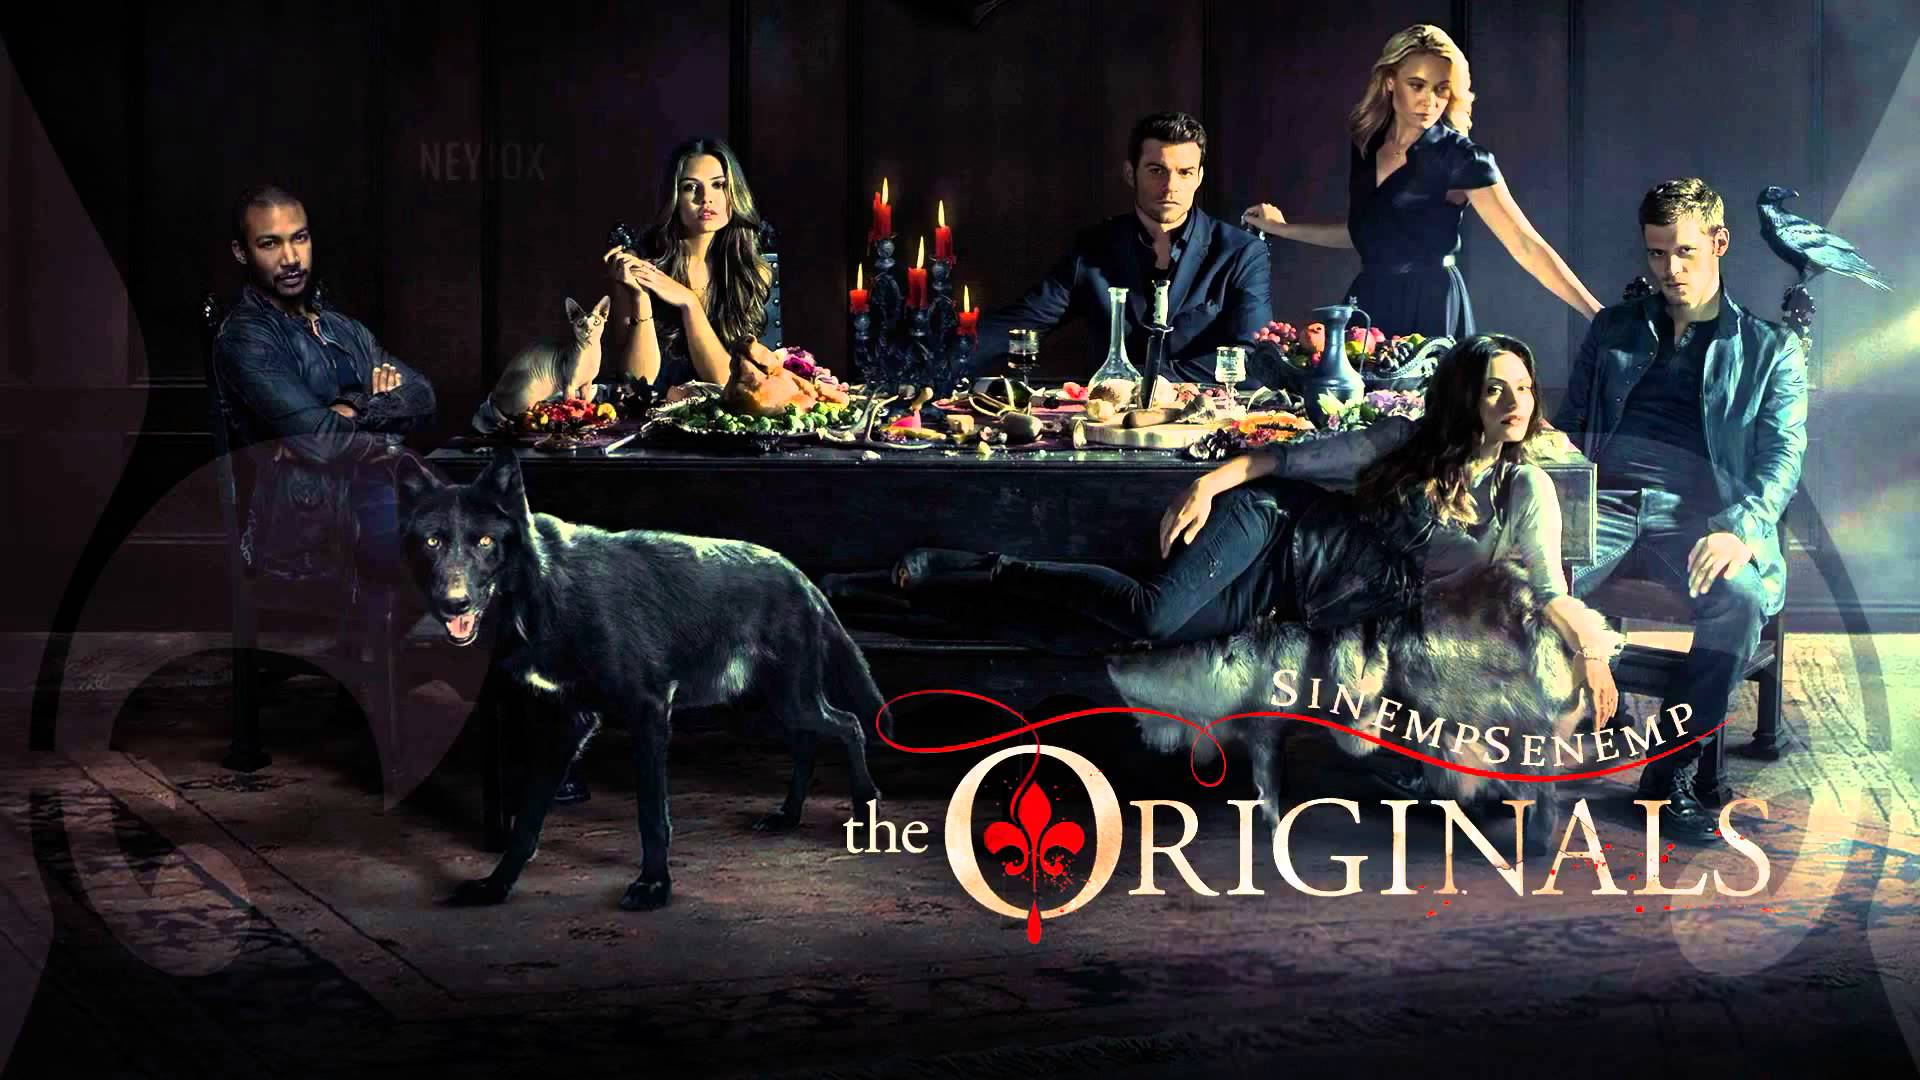 The originals season 3 episode 2 cast / Academy award dvd screeners